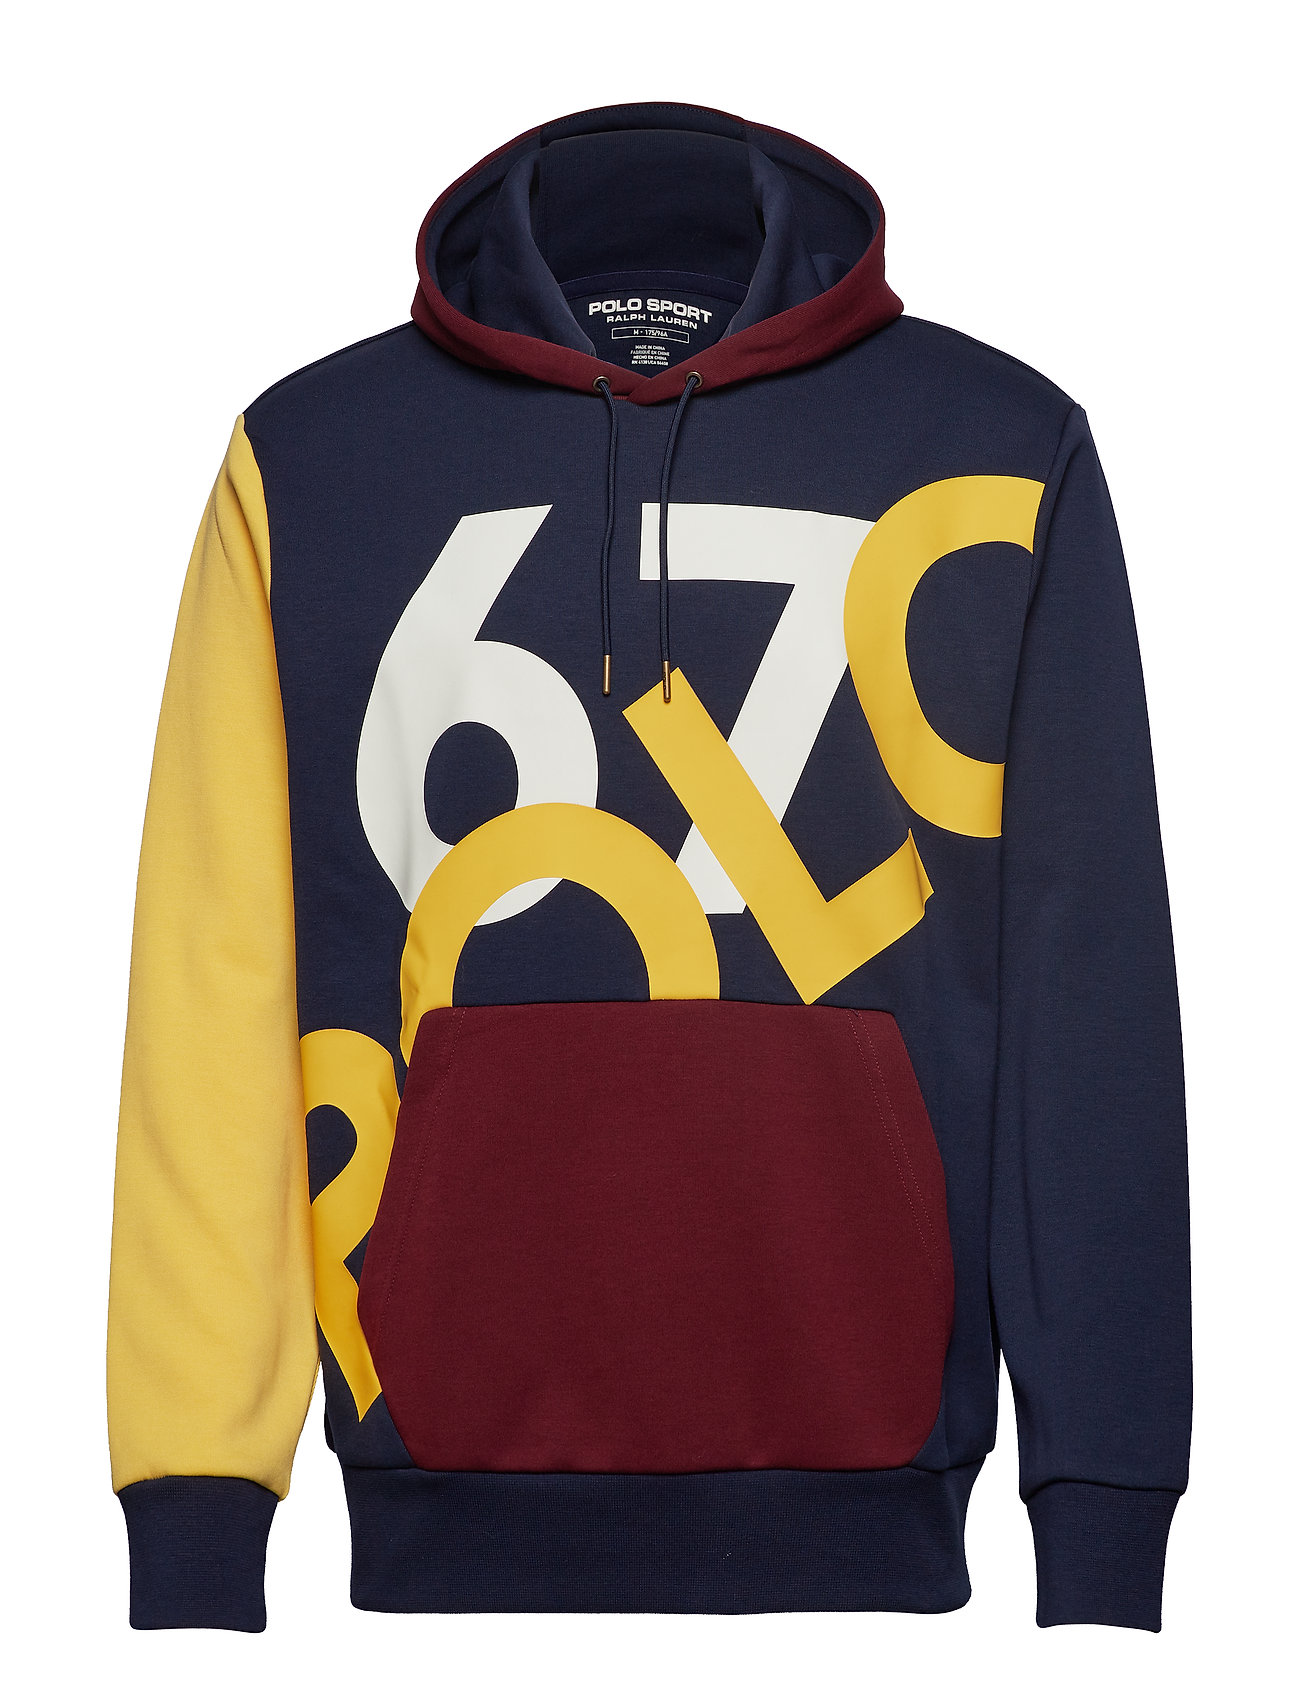 Polo Ralph Lauren Double-Knit Graphic Hoodie - CRUISE NAVY MULTI